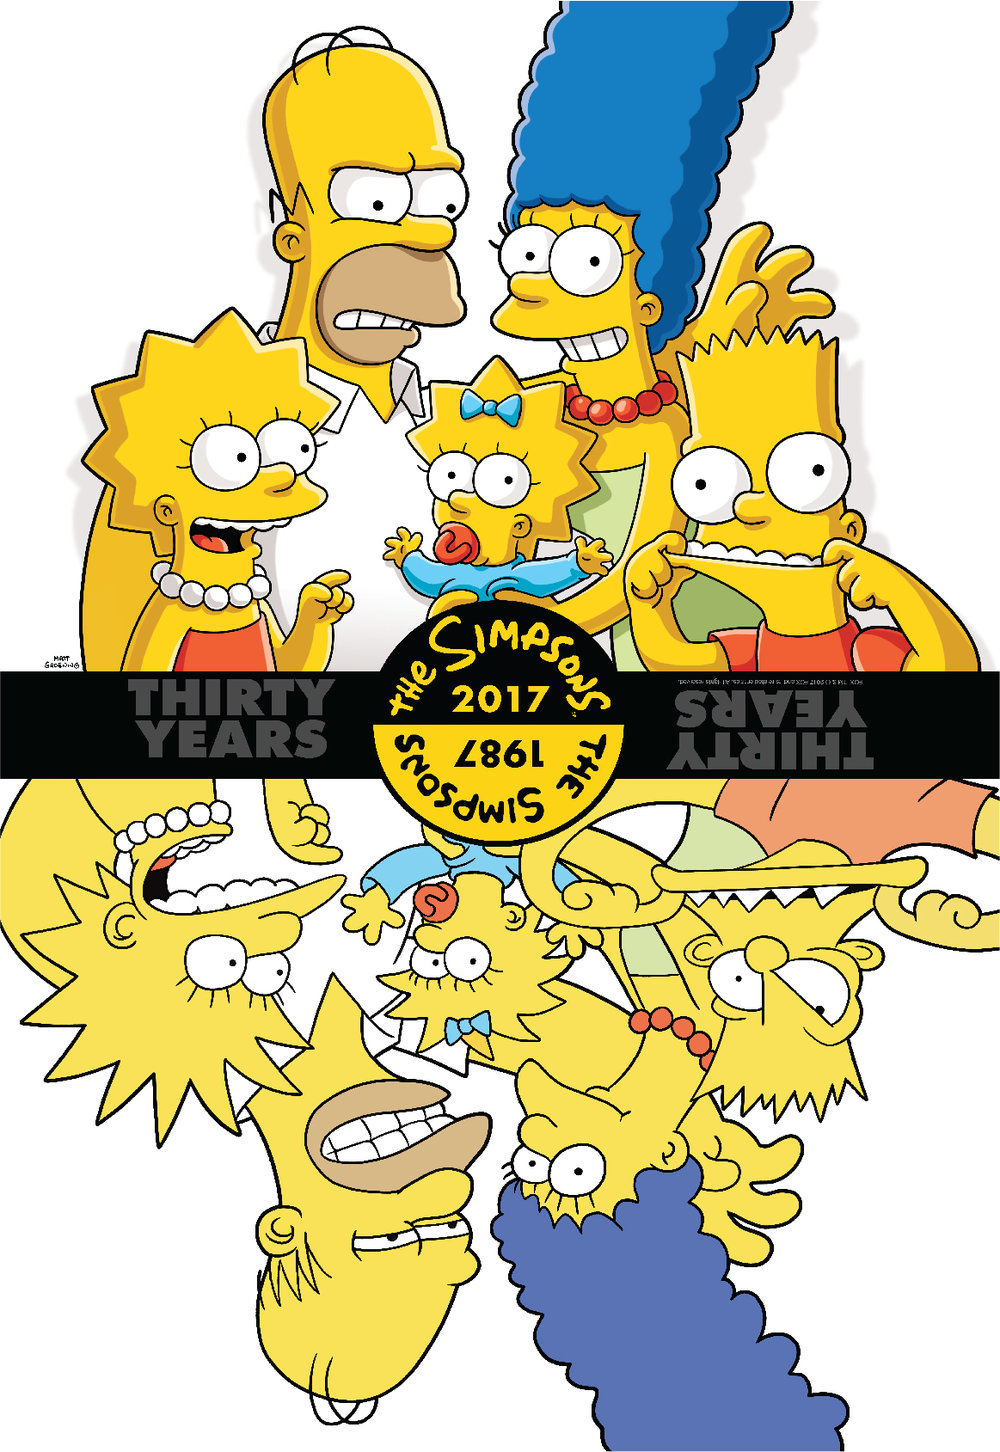 2017_Simpsons_Premiere_Party_Invite_08282017_OL_FRONT.jpg